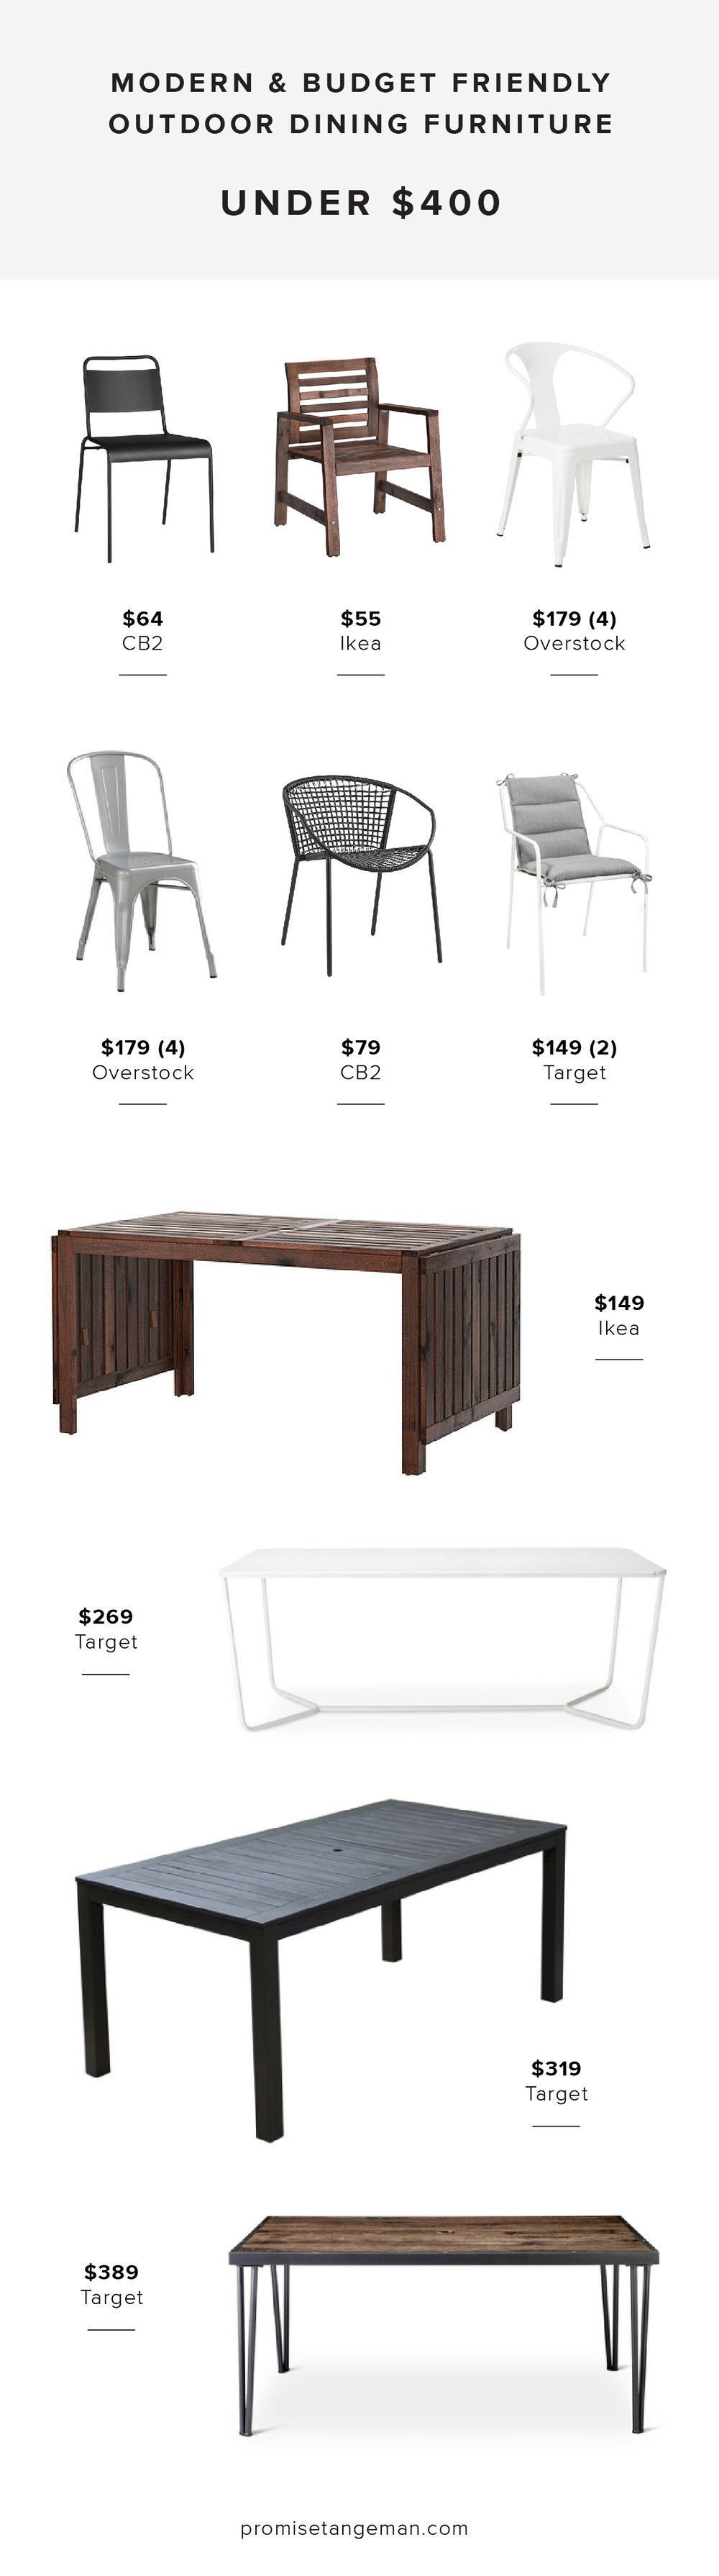 Affordable Outdoor Dining Furniture by Promise Tangeman